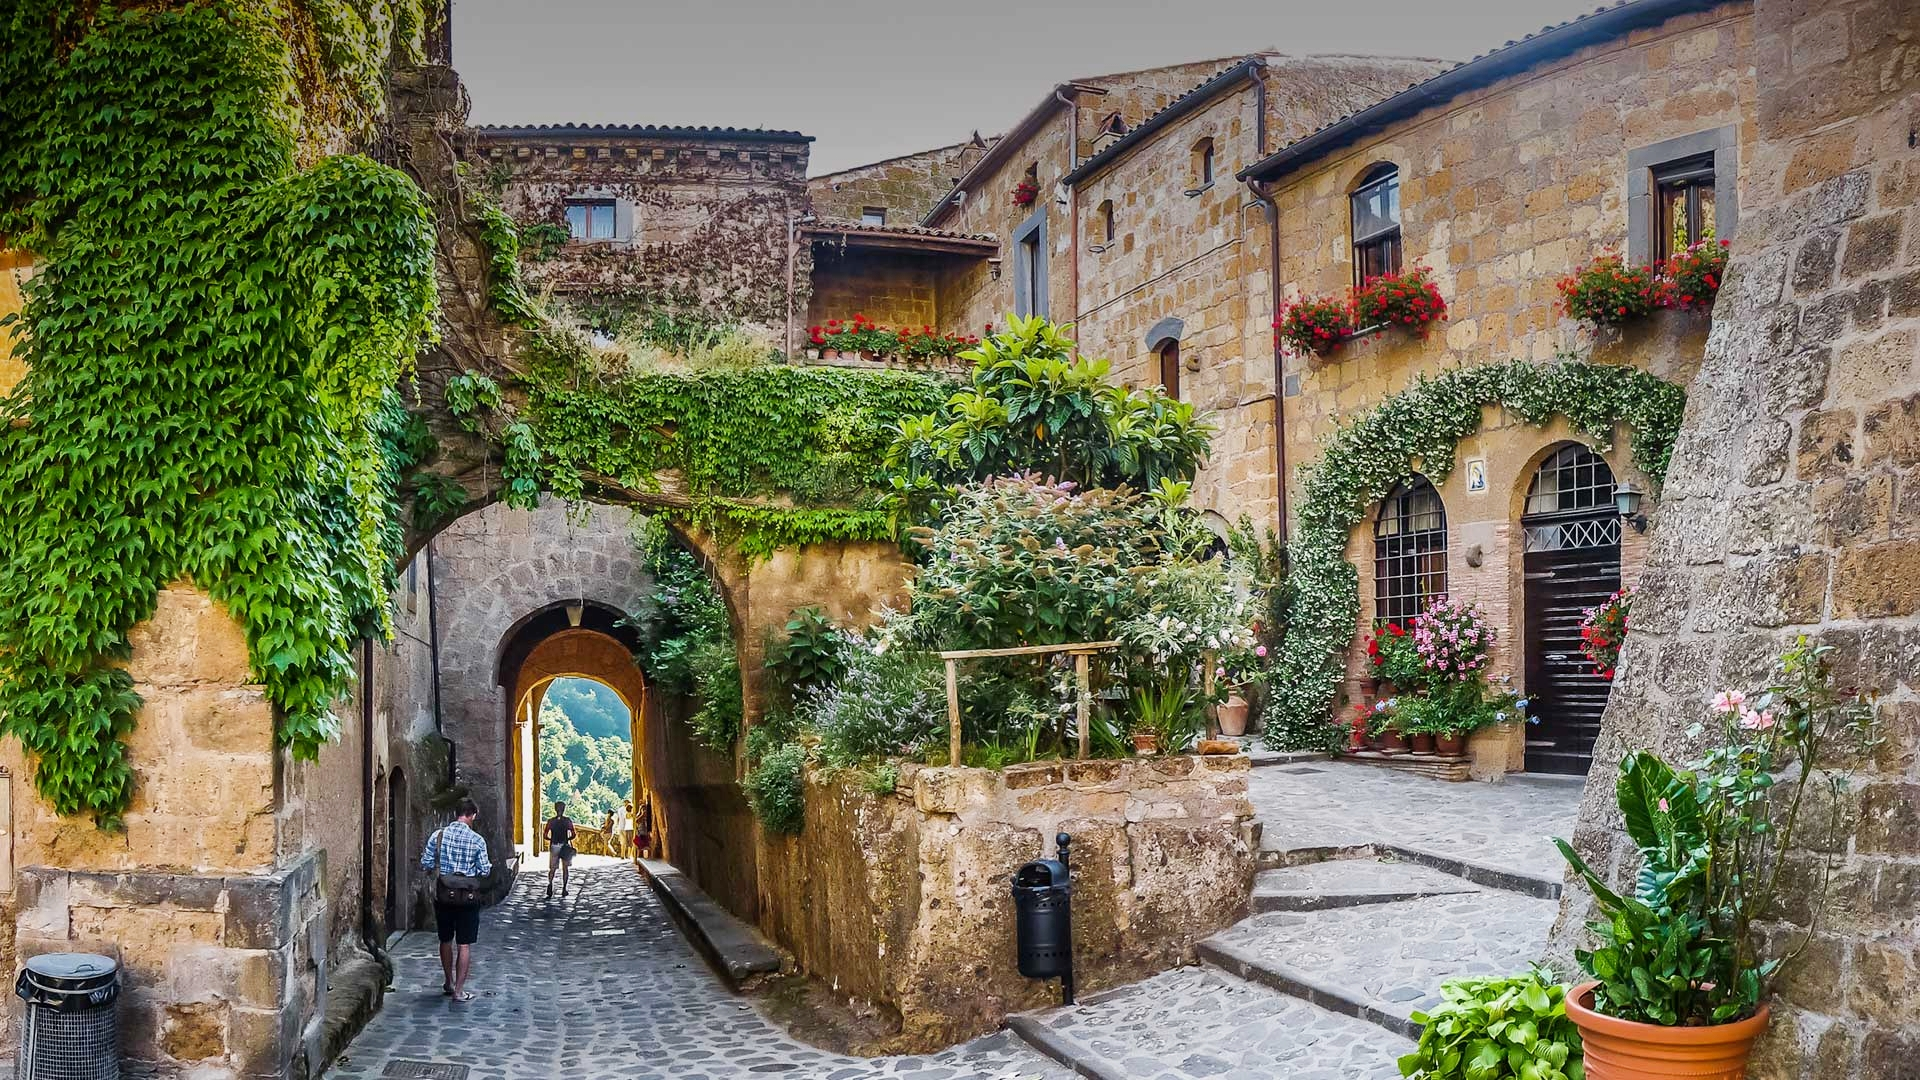 - We challenge traditional travel packagesand do not view Civita Bagnoregio as an